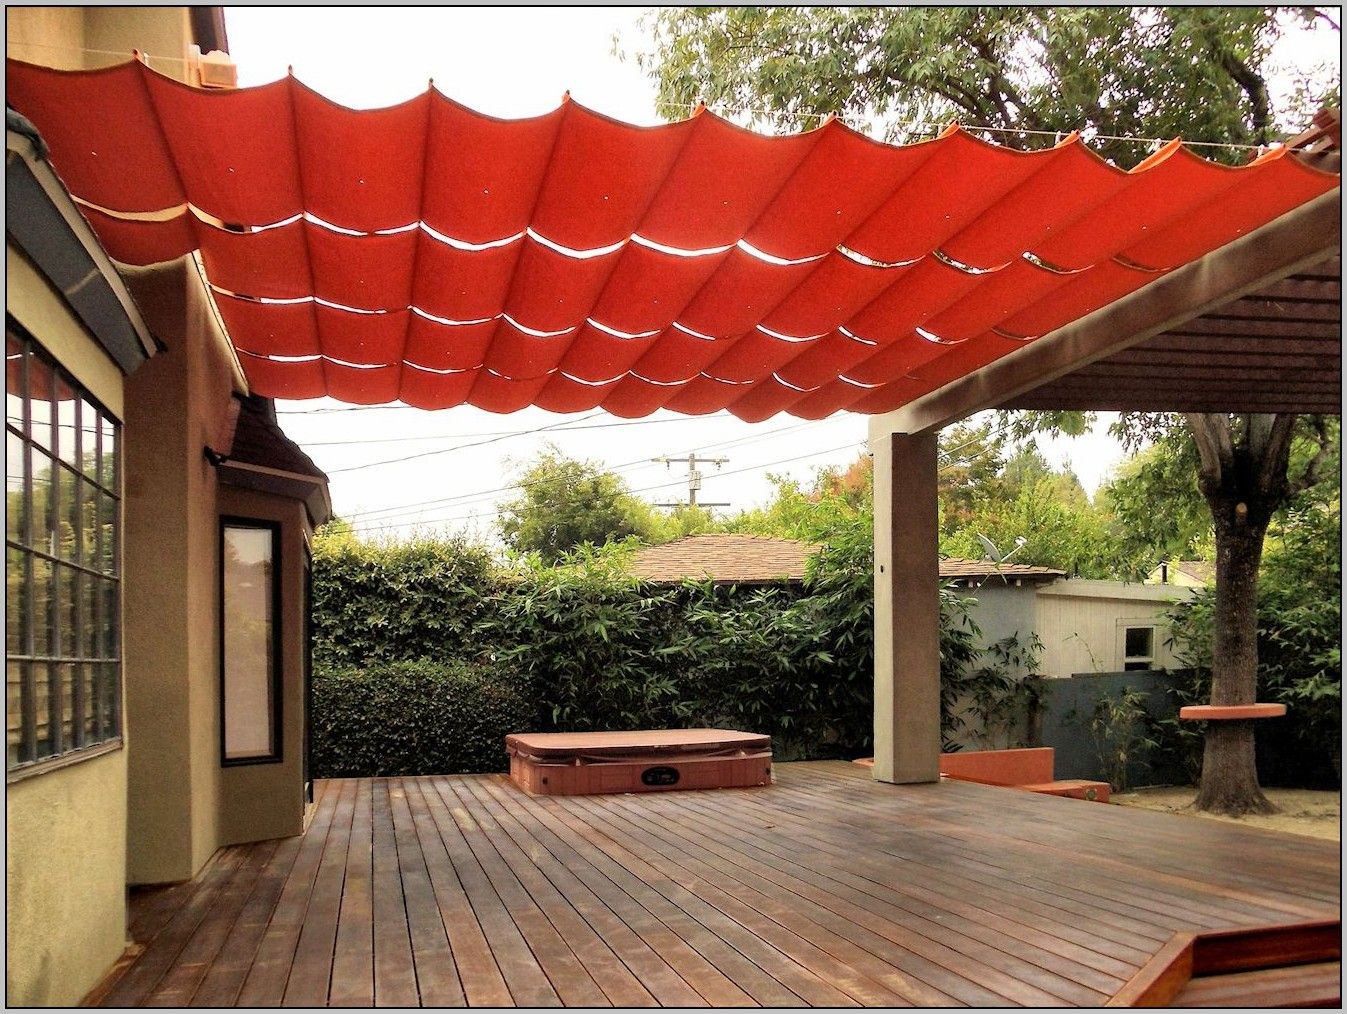 ideas diy to canopy covers out full plans shade best standing a outdoor build of back lowes free size cover patio inexpensive how aluminum wood kits patios